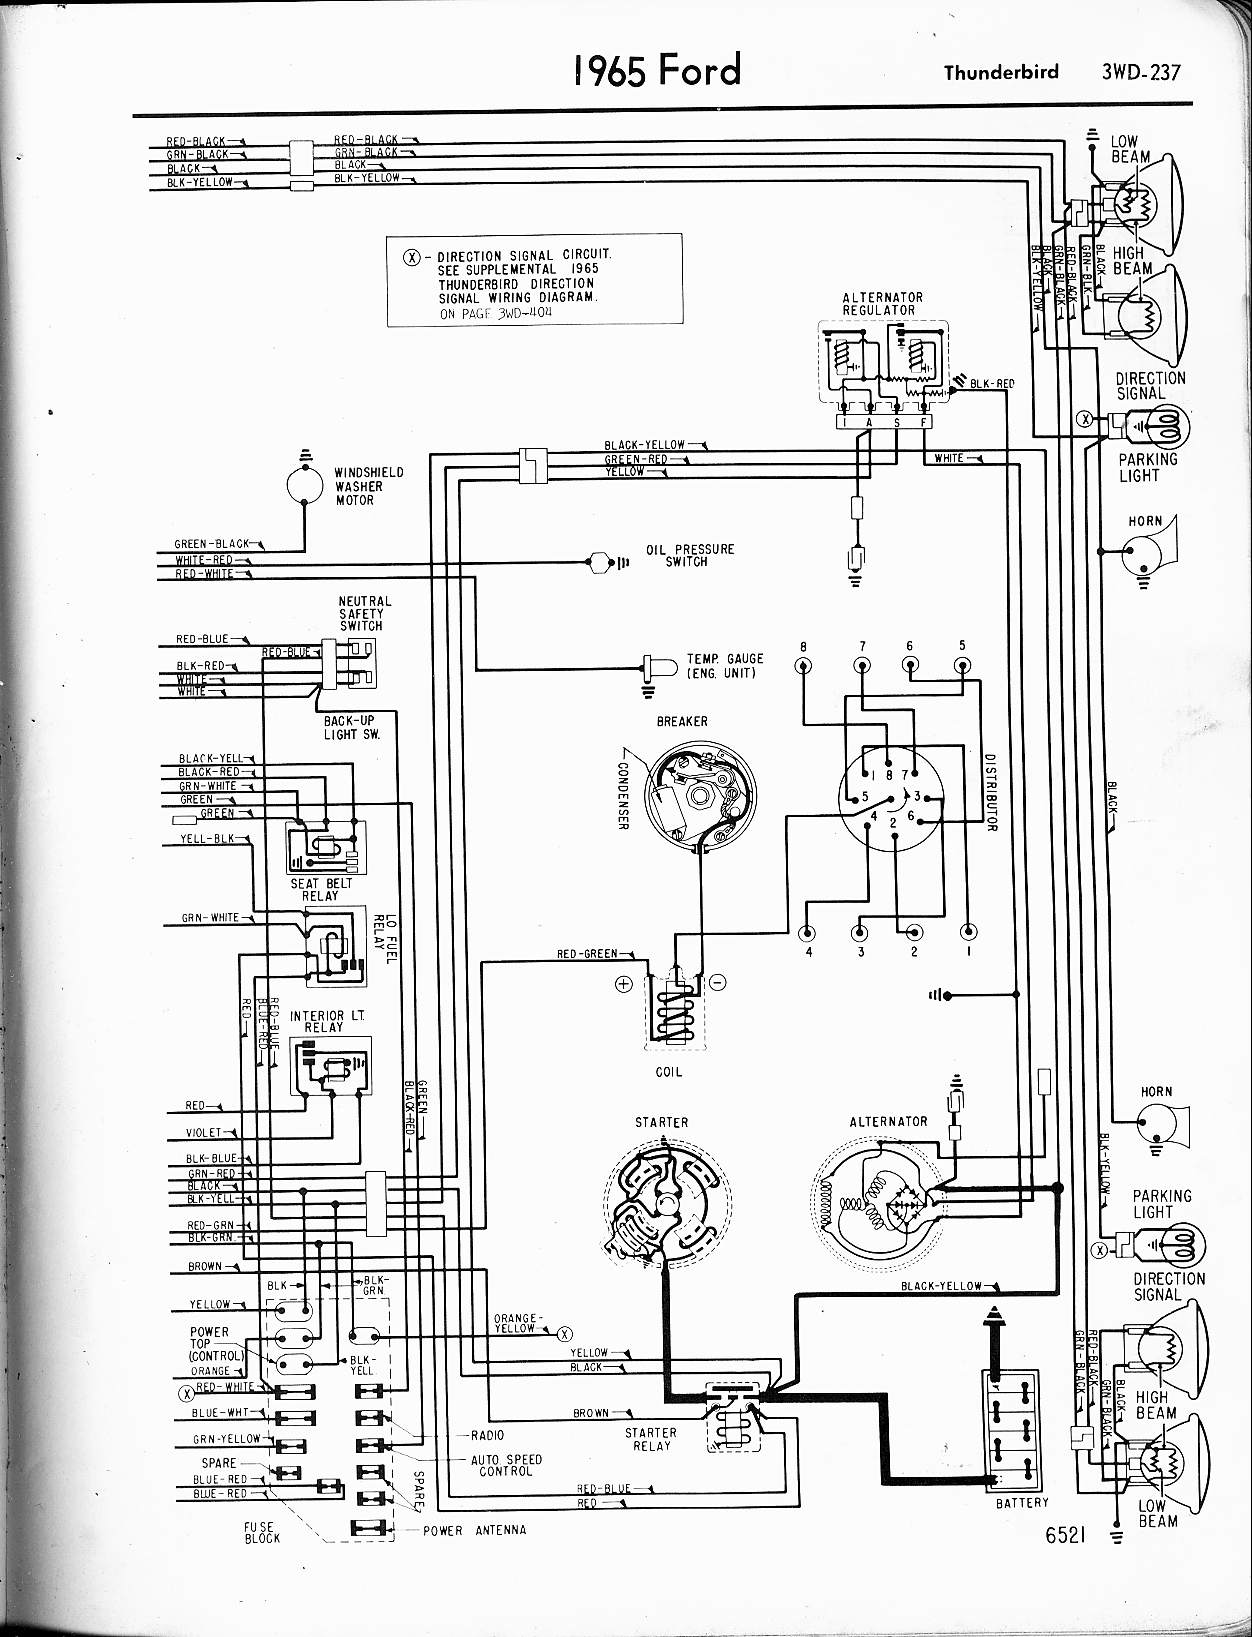 MWire5765 237 1965 f 100 alt gauge 70 amp circuit breaker ford truck 1966 ford truck wiring diagram at crackthecode.co